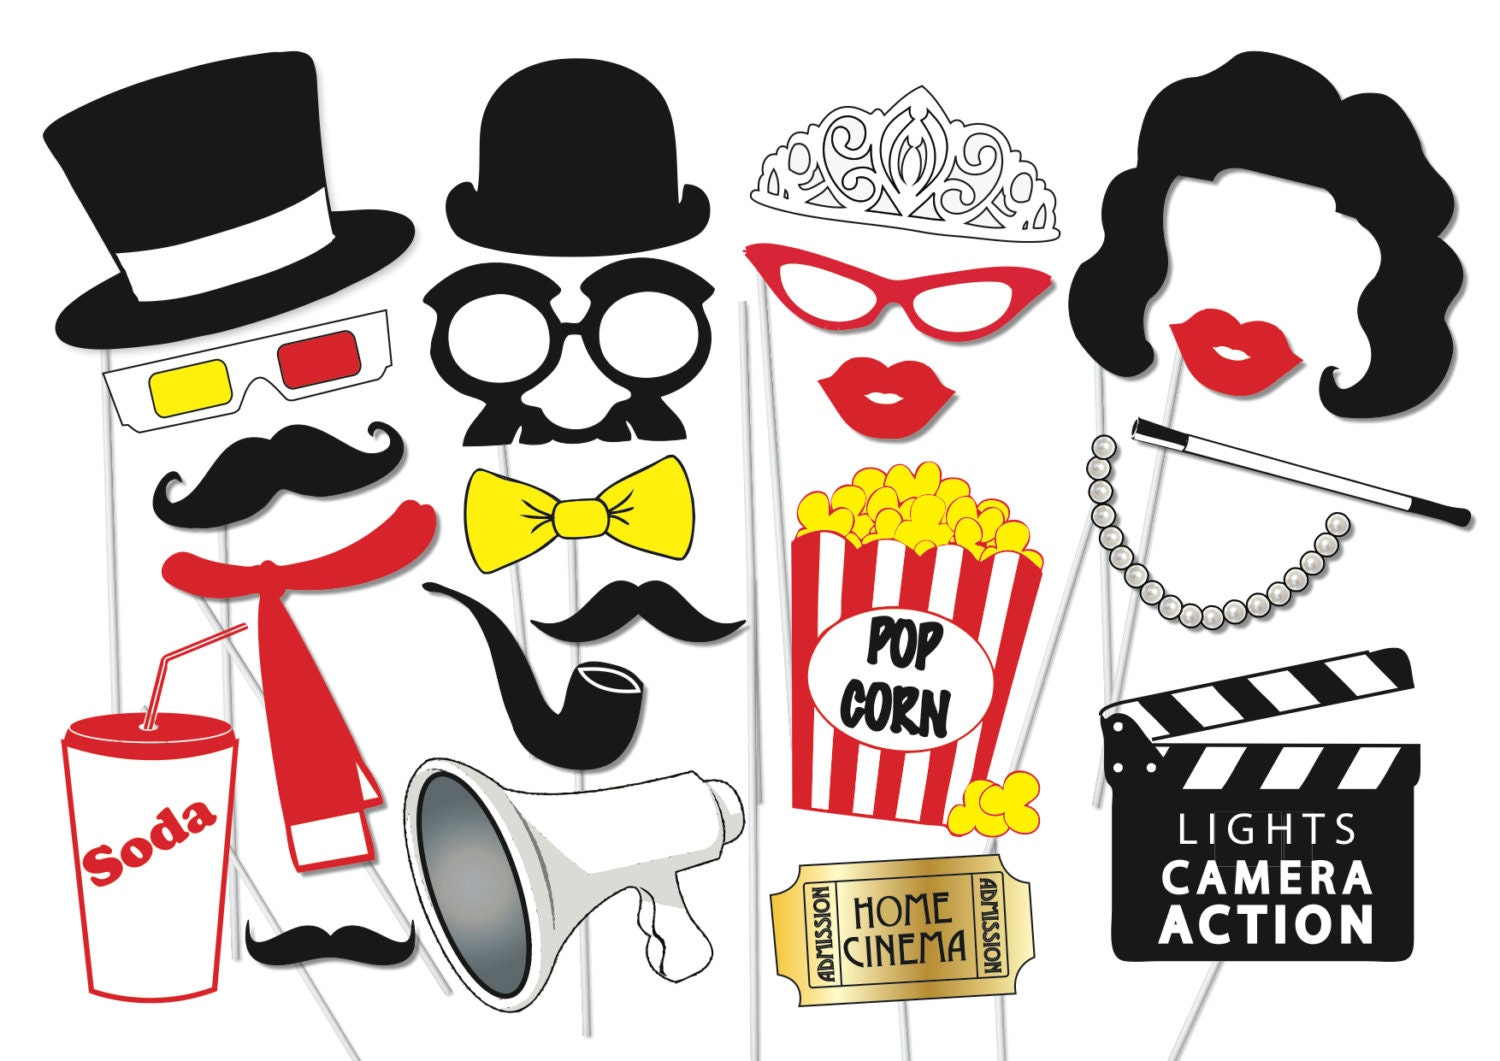 210543351304300997 besides Old Hollywood Glamour Theme Party besides 36 Party Food Recipes For Oscar Night And Beyond in addition P 378 And The Oscar Goes To How To Throw An Academy Awards Viewing Party moreover 6 Diy Oscar Party Ideas. on oscar party popcorn bar